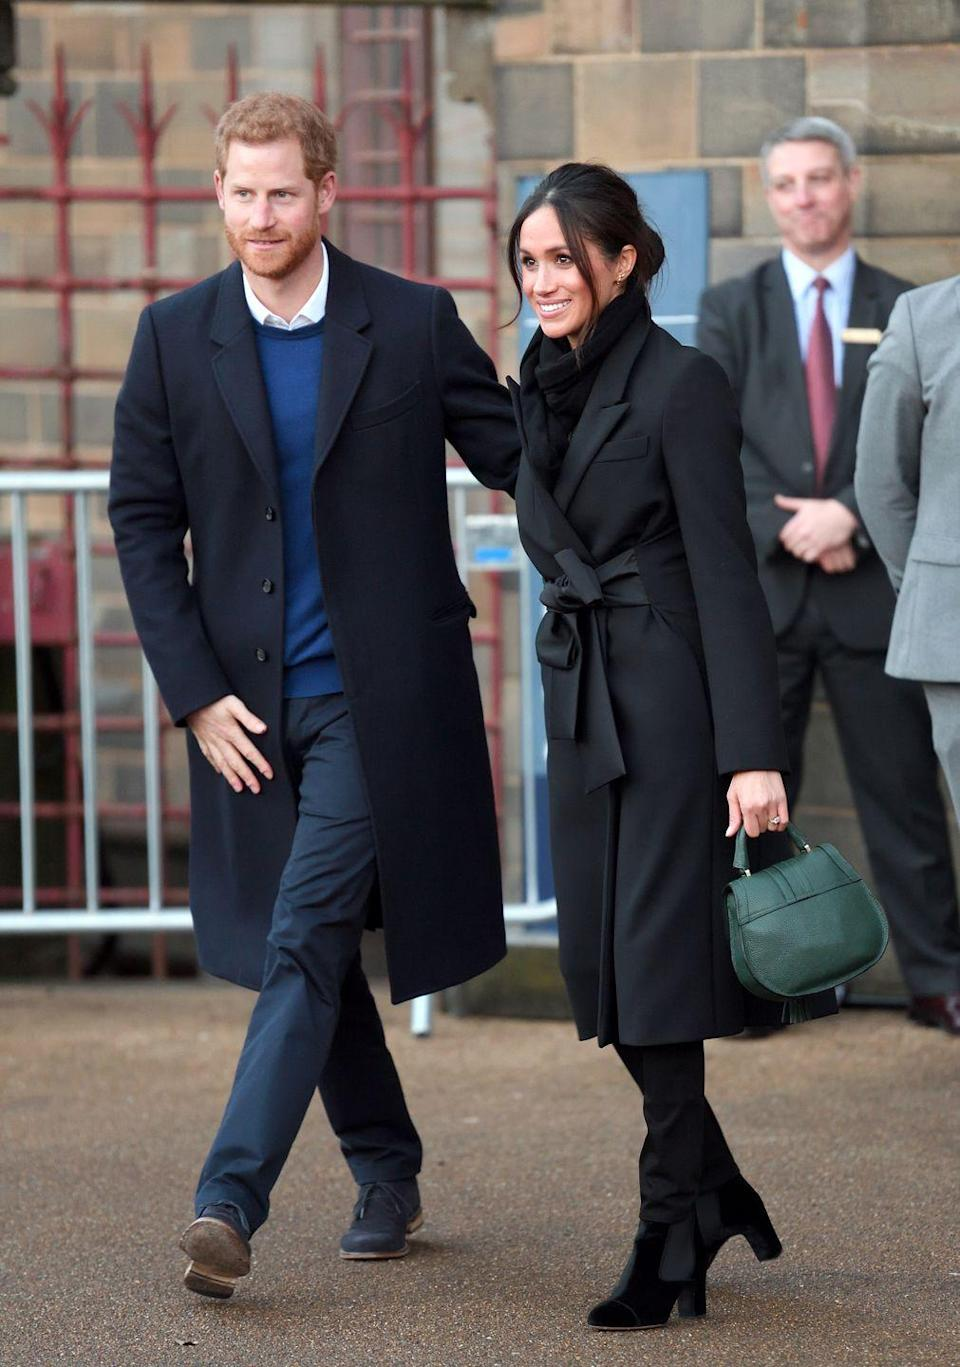 """<p>Meghan Markle married Prince Harry in <a href=""""https://www.cosmopolitan.com/entertainment/a22859393/meghan-markle-wedding-dress-display/"""" rel=""""nofollow noopener"""" target=""""_blank"""" data-ylk=""""slk:one of the most iconic royal weddings in history"""" class=""""link rapid-noclick-resp"""">one of the most iconic royal weddings in history</a>. She is yet another commoner to capture the heart of a royal. Markle, best known for her role on <em>Suits</em>, and Harry were set up on a date by a mutual friend. The two, who have been <a href=""""https://www.cosmopolitan.com/entertainment/celebs/a8673228/prince-harry-meghan-markle-dating-timeline/"""" rel=""""nofollow noopener"""" target=""""_blank"""" data-ylk=""""slk:linked since 2016"""" class=""""link rapid-noclick-resp"""">linked since 2016</a>, became engaged at the end of 2017 and married in May 2018. </p>"""